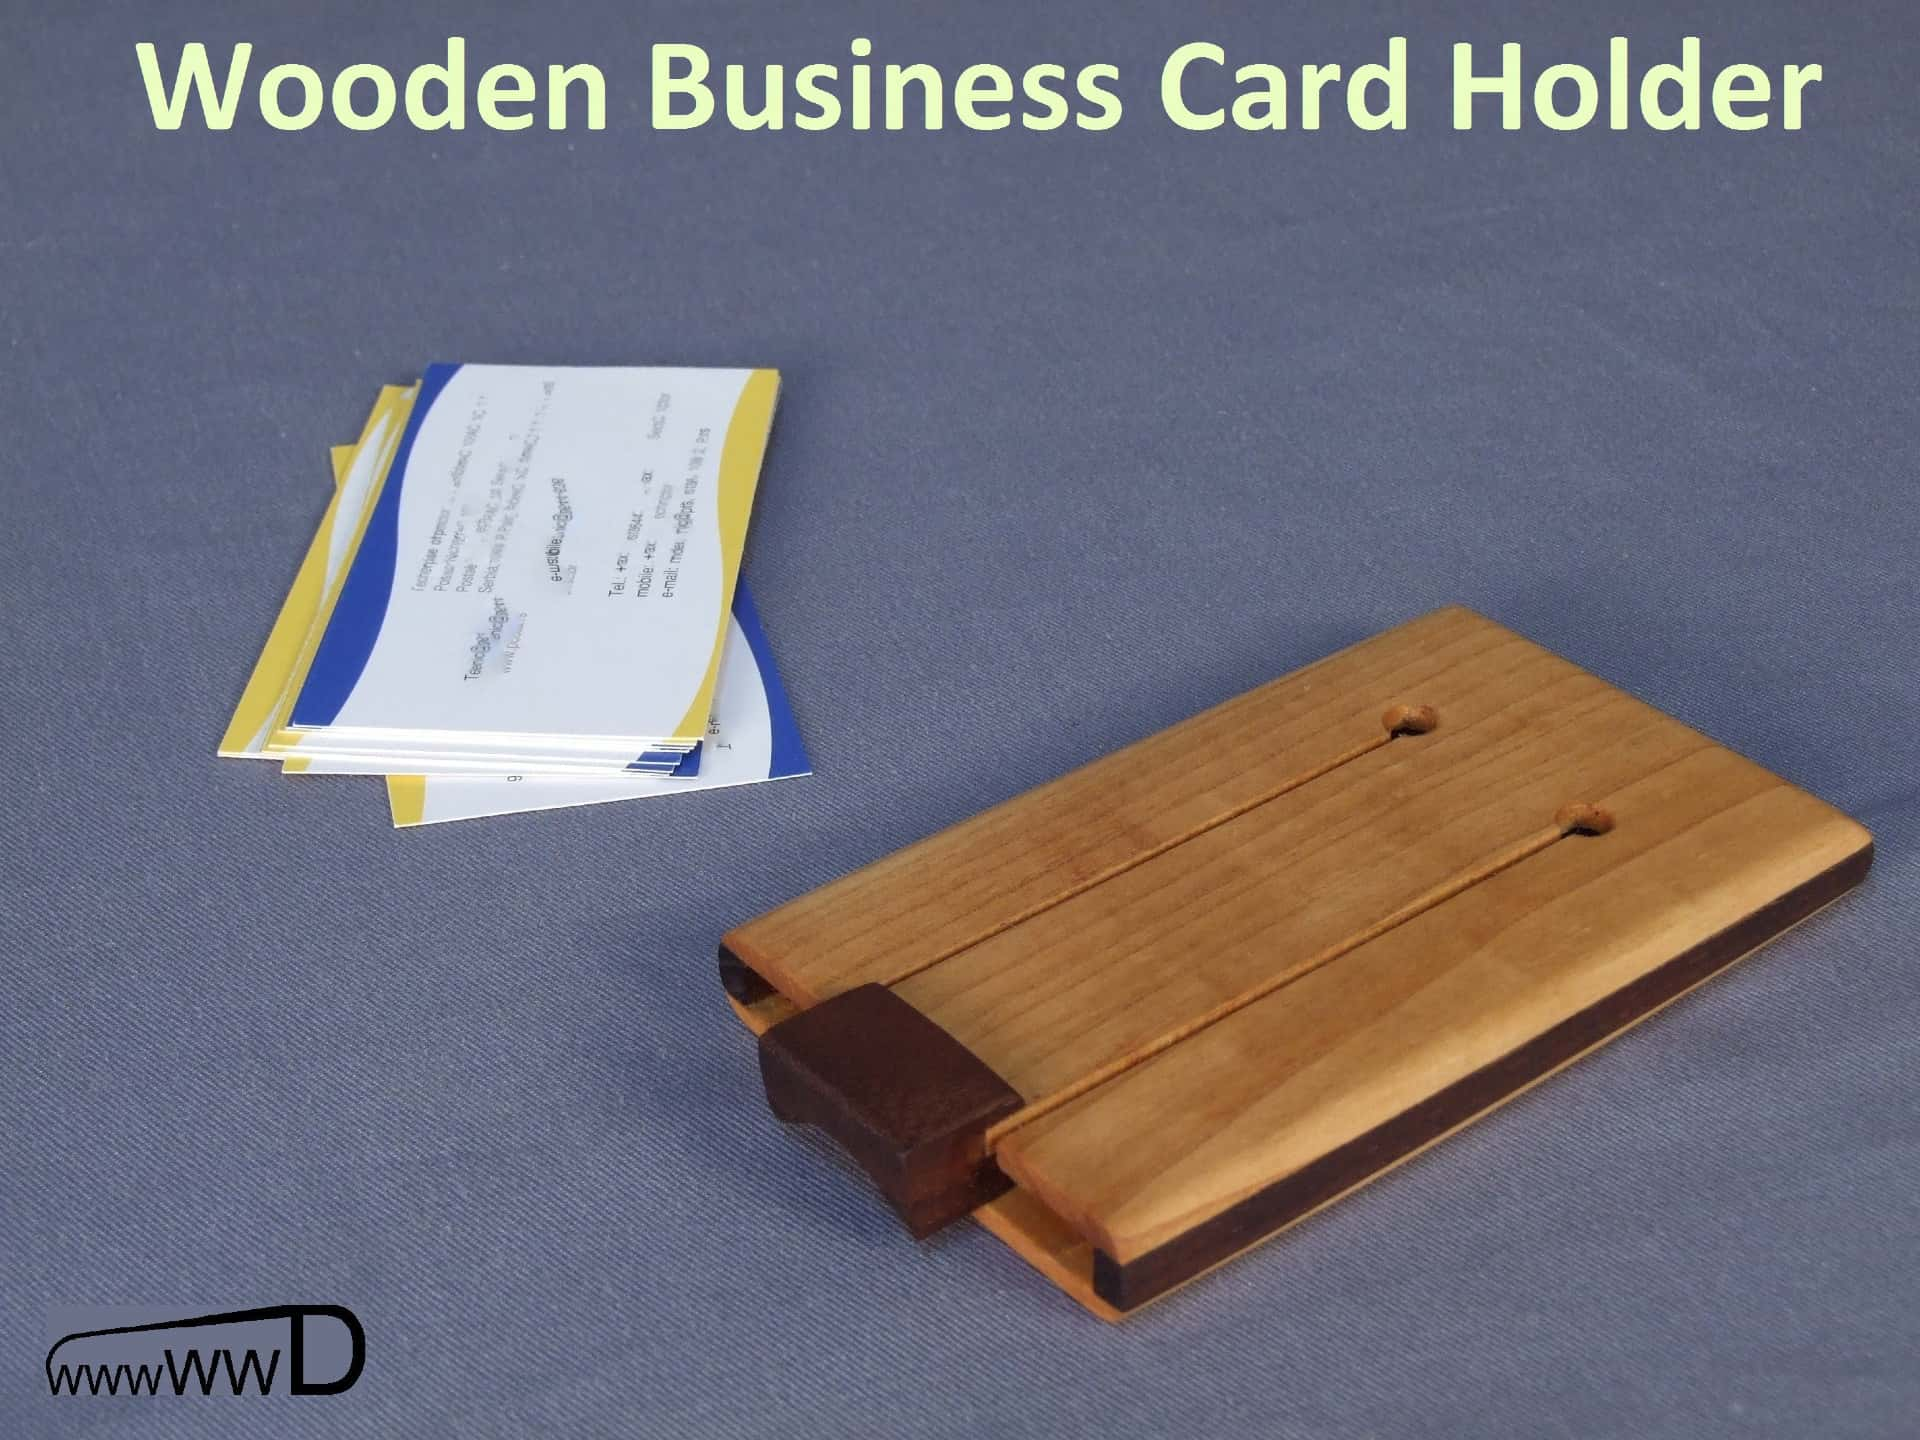 Make an Impression with this Wooden Business Card Wallet